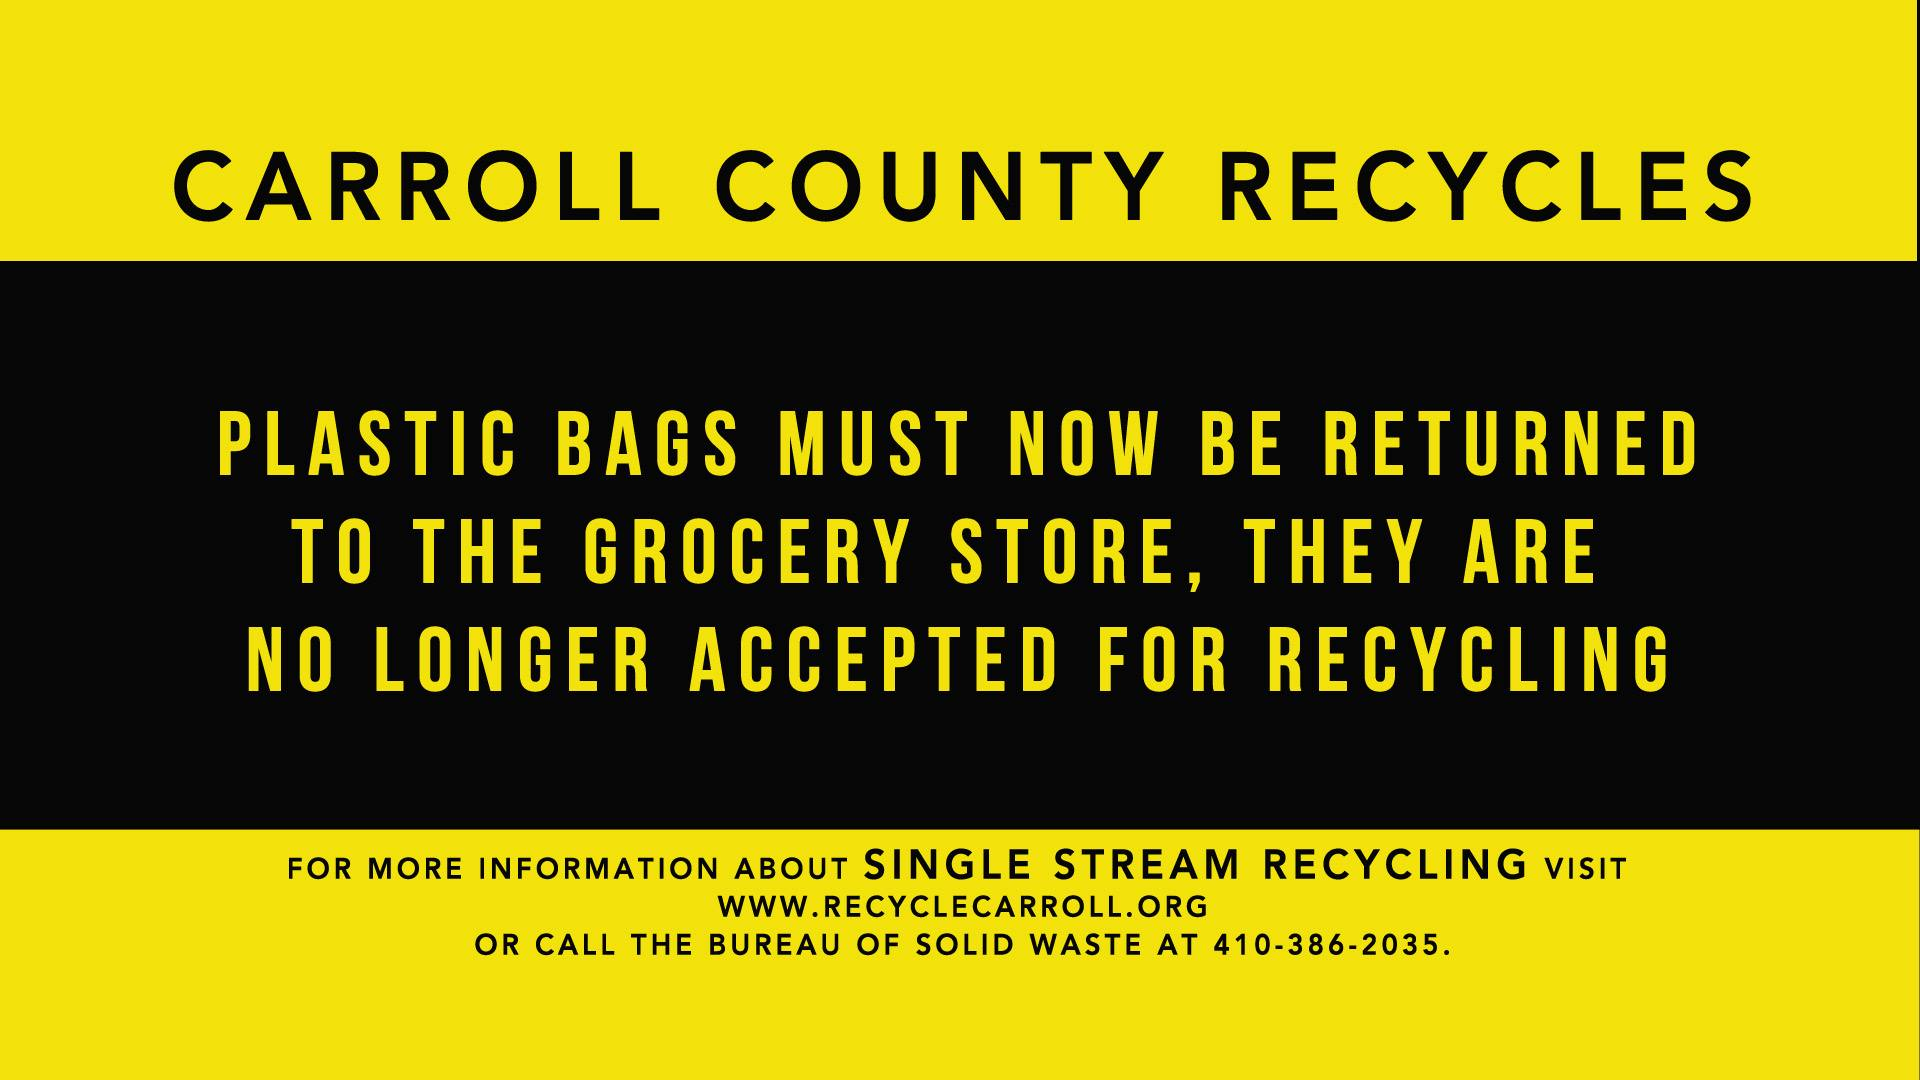 Plastic bags are no longer recycleable